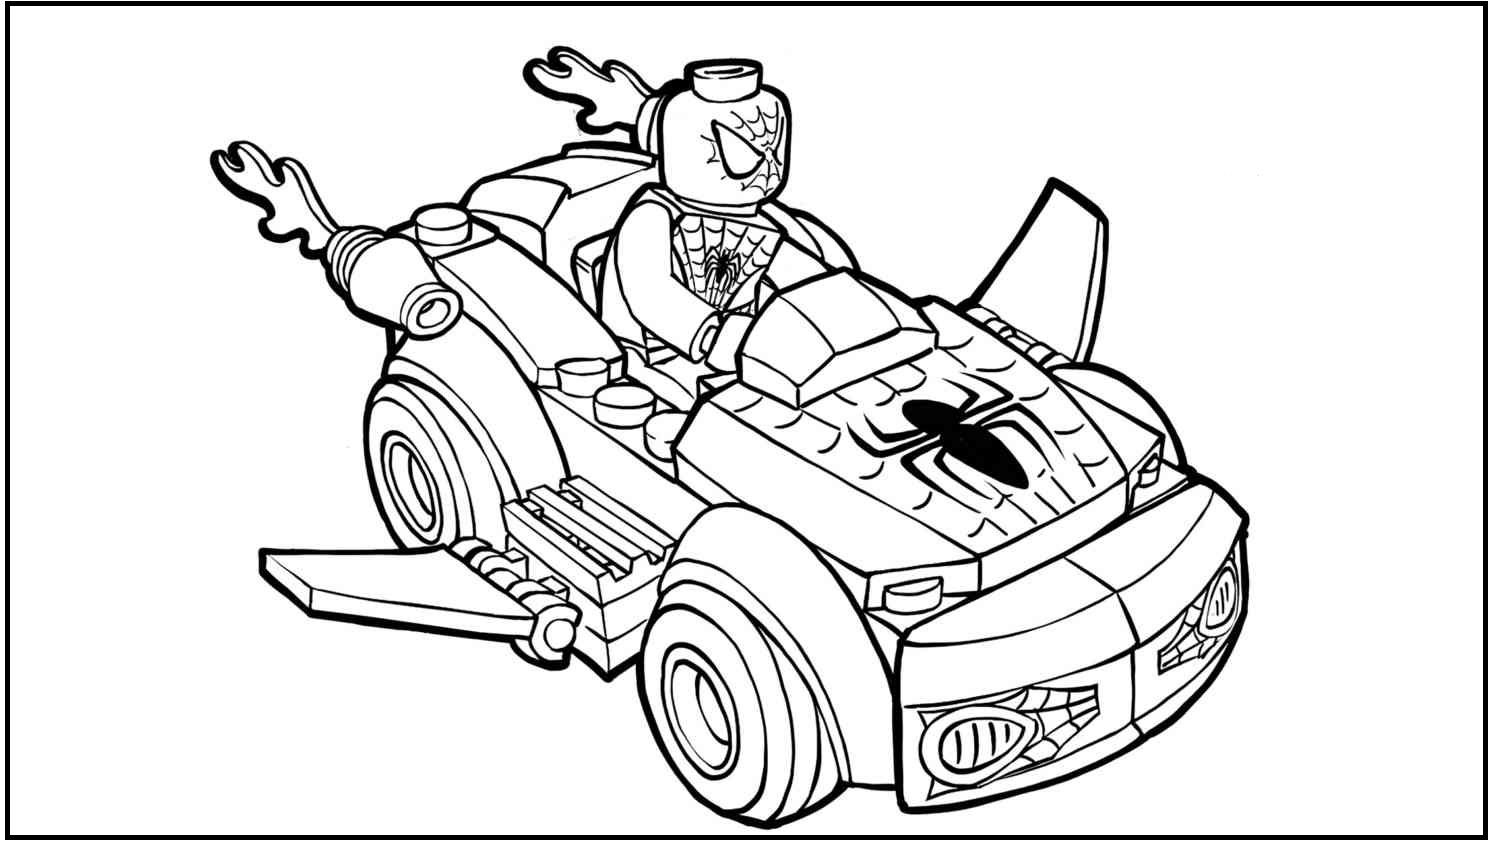 Lego Spiderman Coloring Pages Spiderman Coloring Avengers